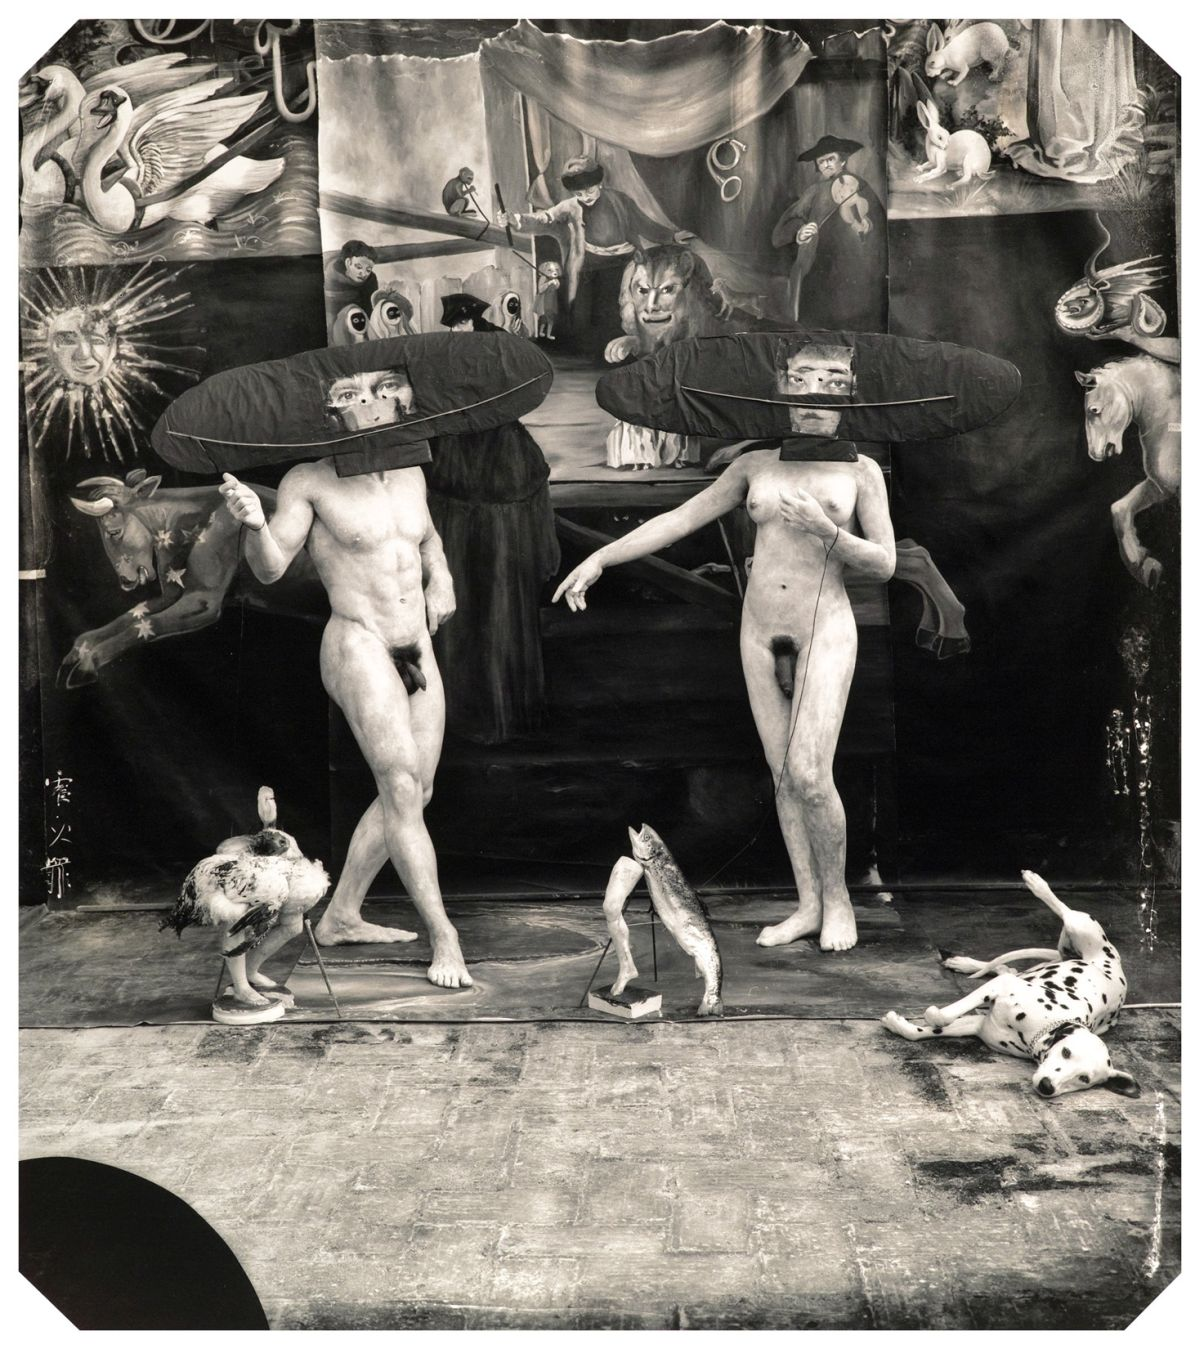 "Joel-Peter Witkin, The Eggs of My Amnesia, Rome, 1996  From the Photographic Works series  20 x 16"", 40 x 30"" gelatin silver print Edition of 6 + 3 AP's, 12 + 3 AP's"